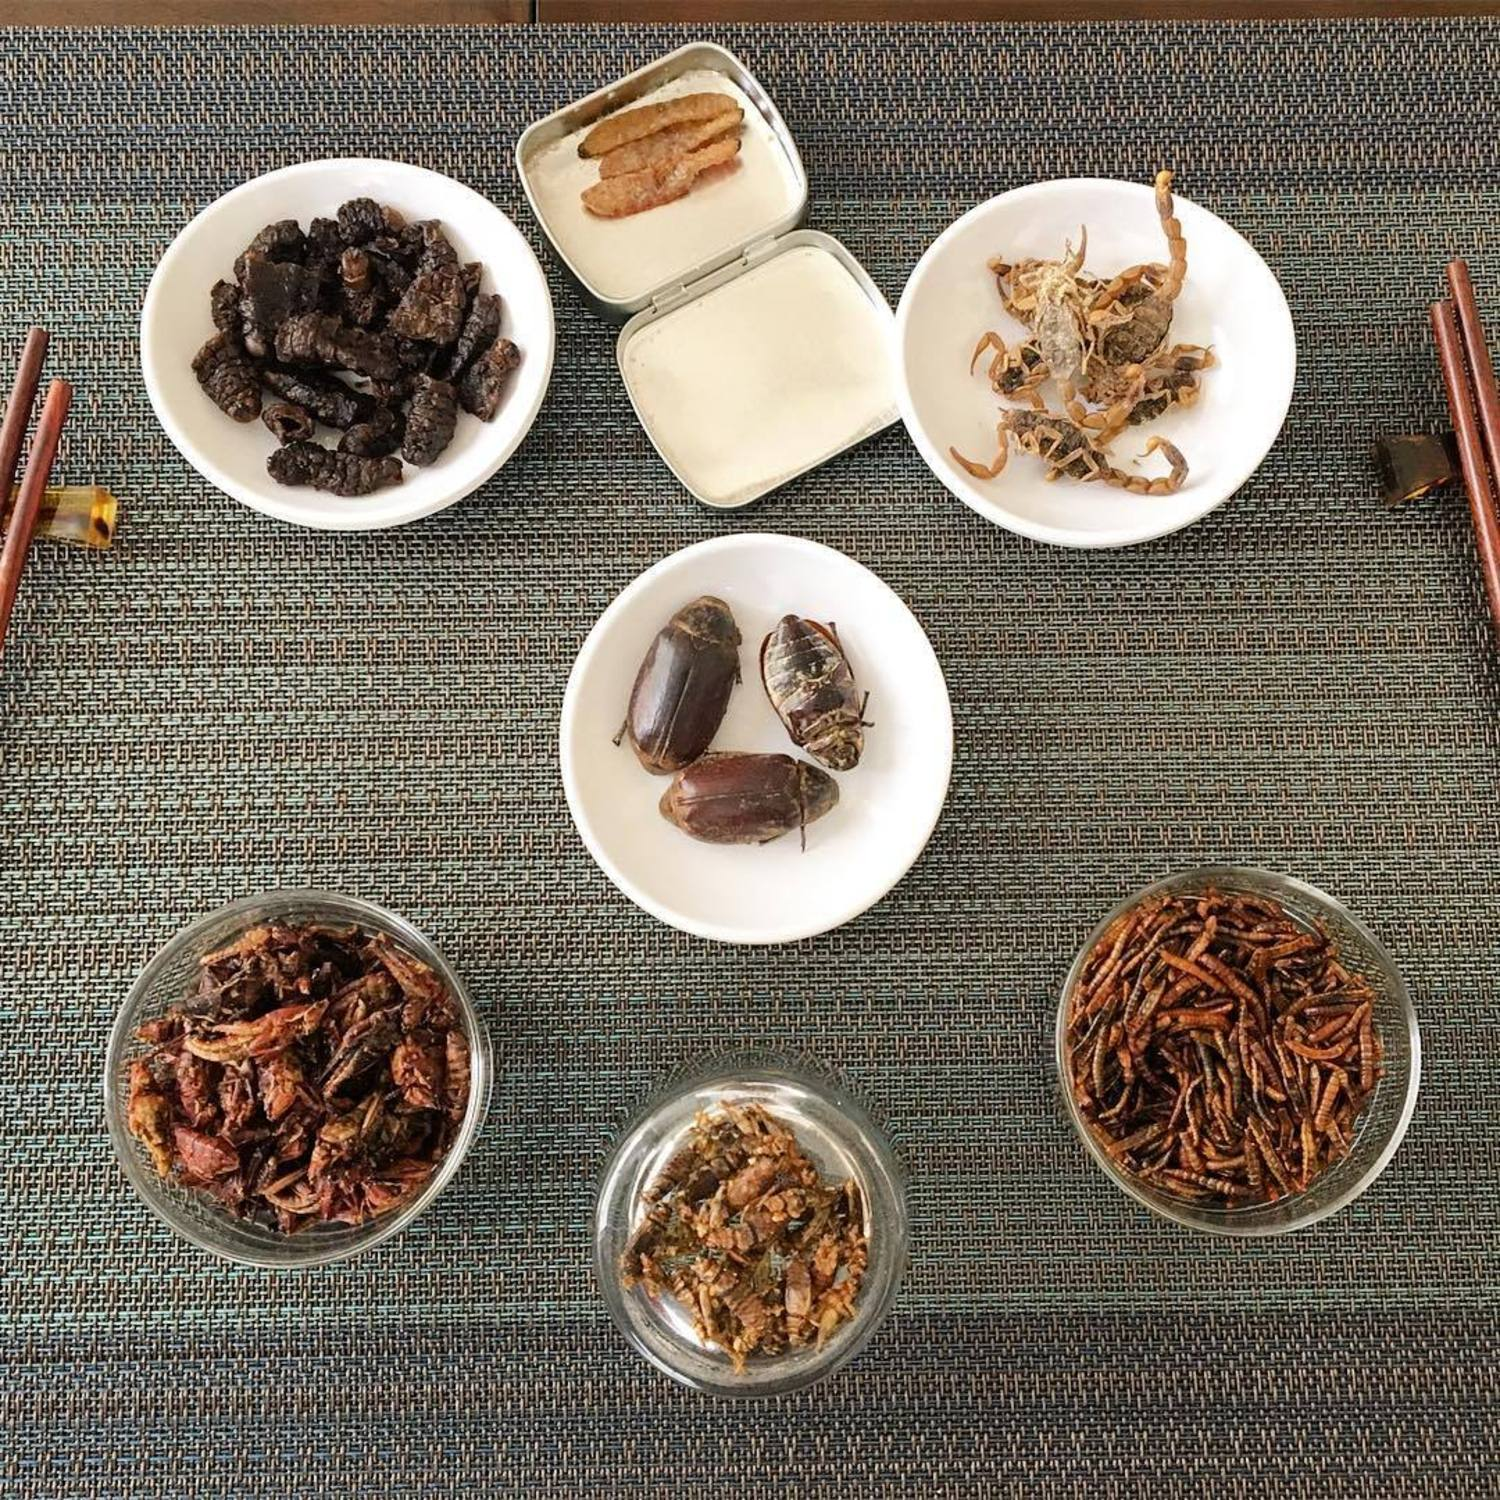 Look at this delicious selection of #edibleinsects from our various sponsors. Tag a friend who'd love to try eating some #bugs! 📷: @dinnerecho